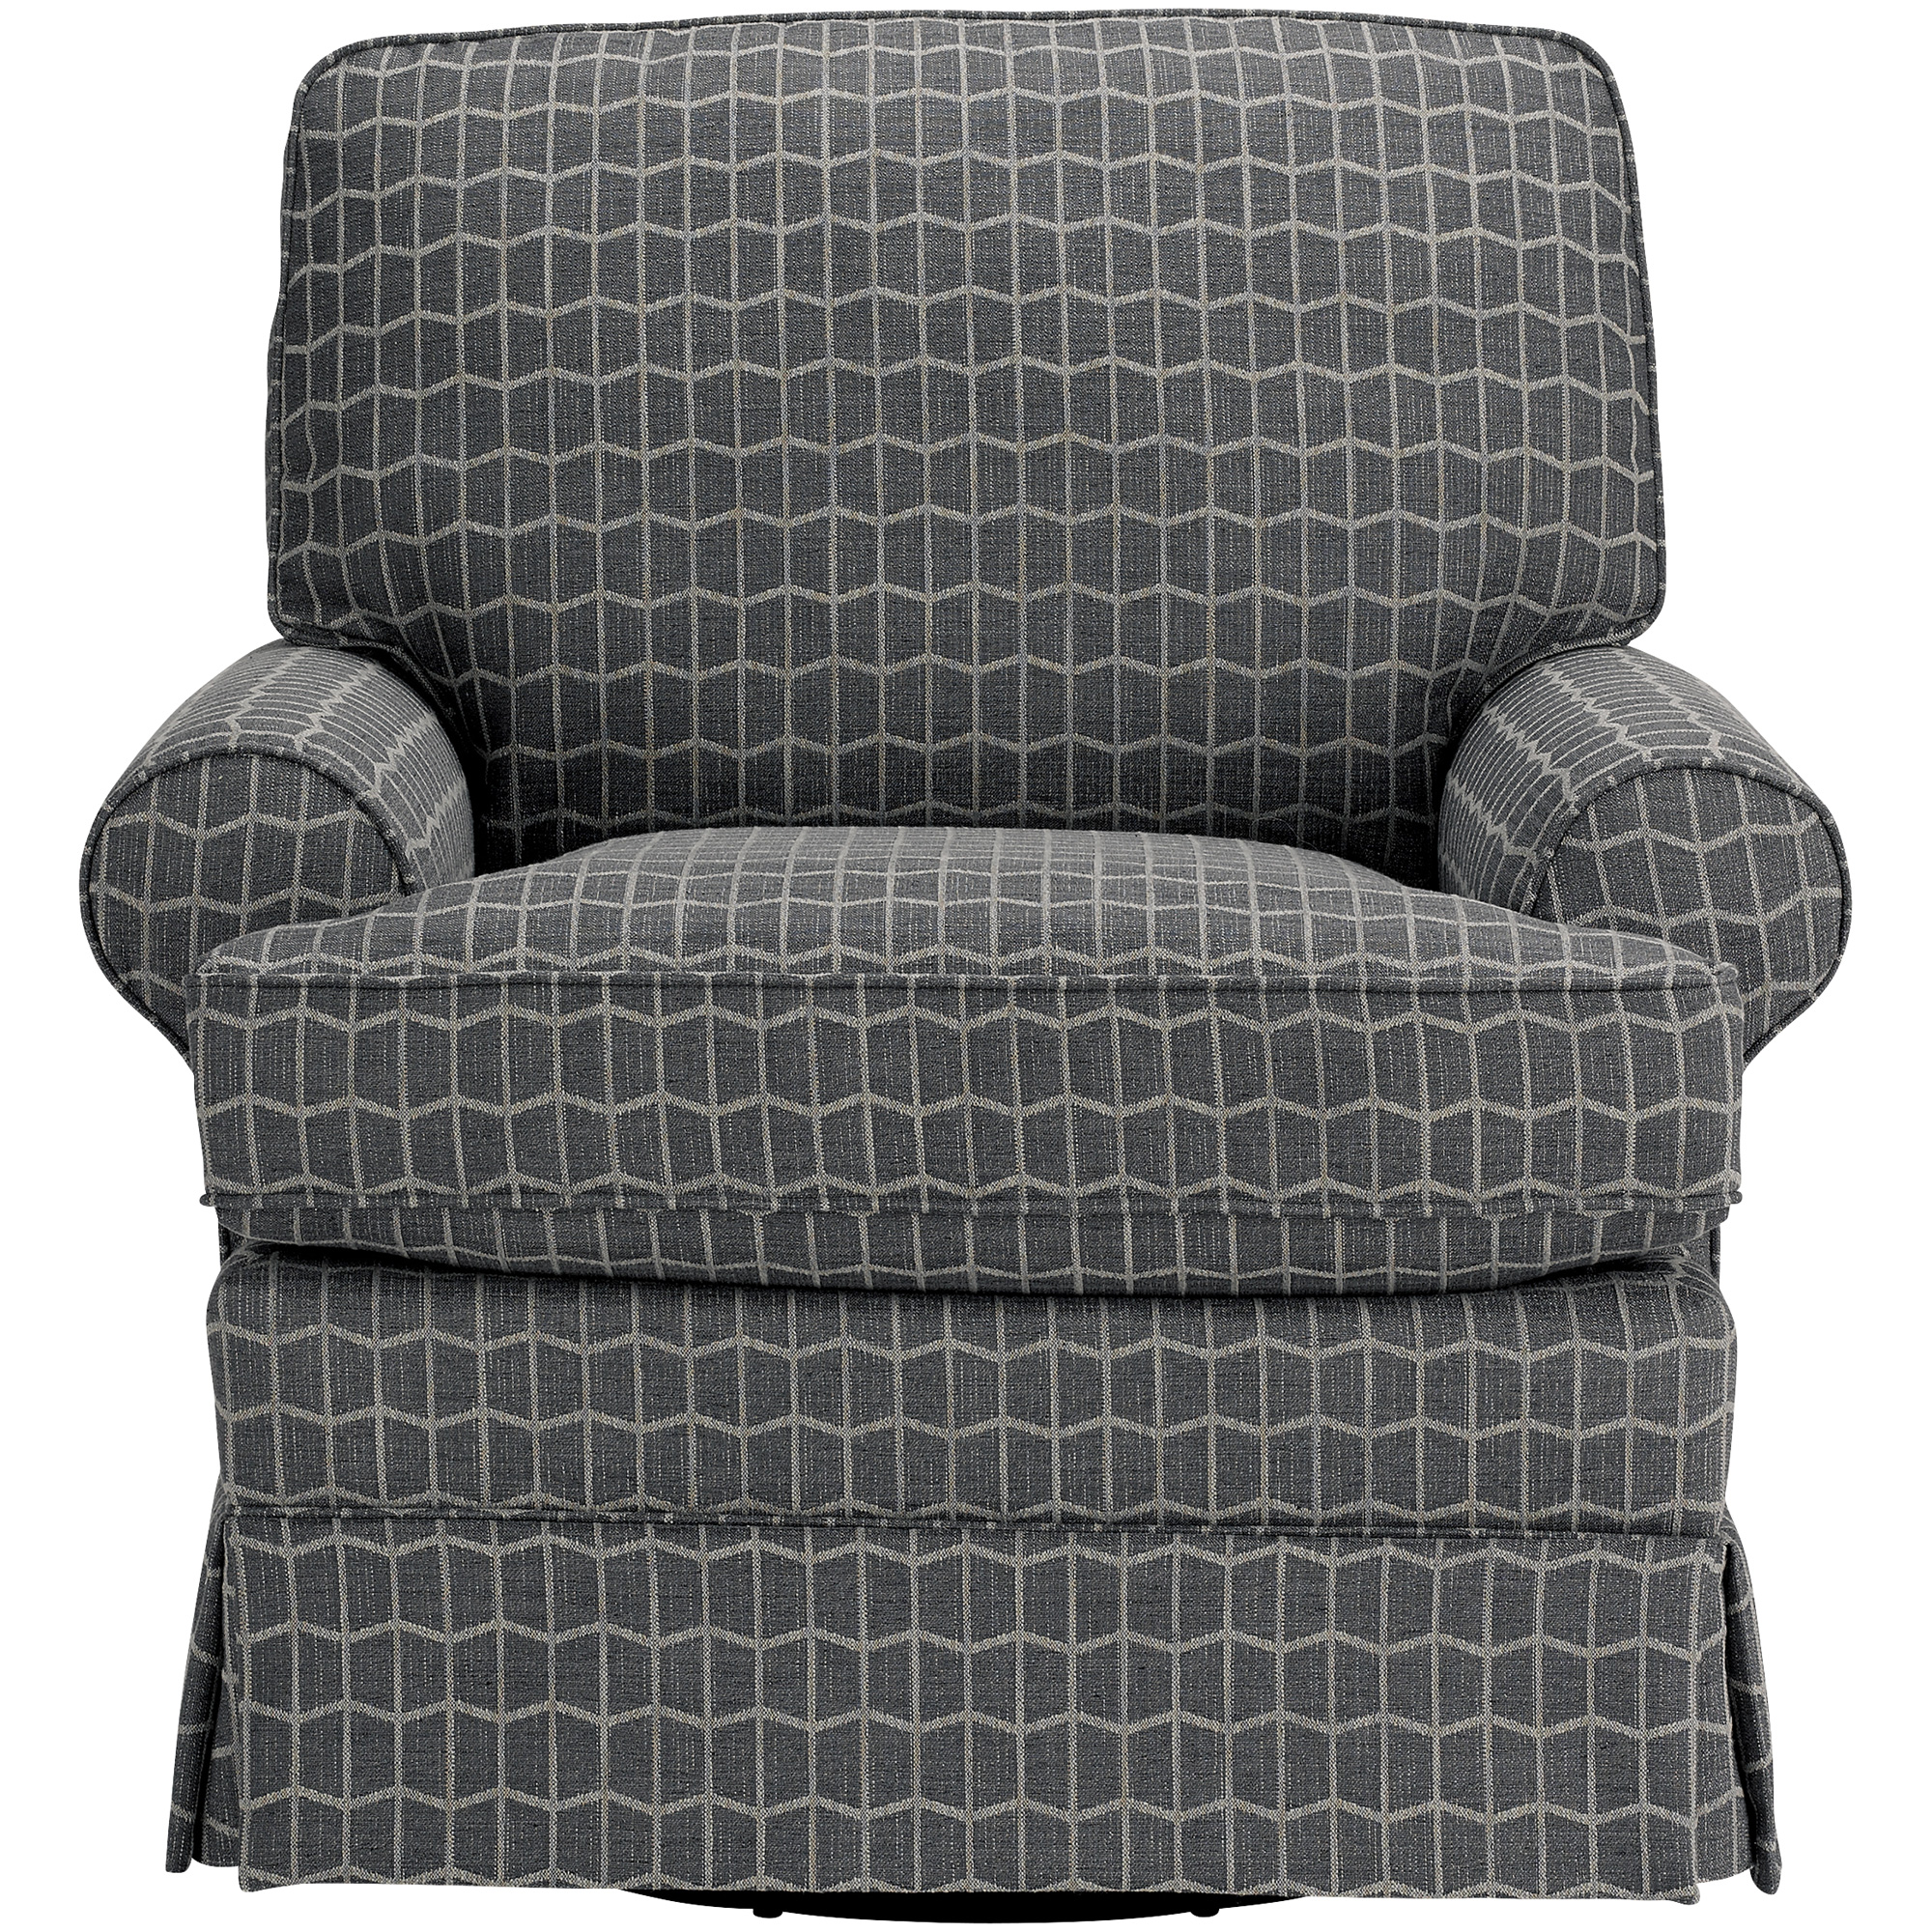 Best Home Furnishings | Quinn Charcoal Swivel Glider Accent Chair